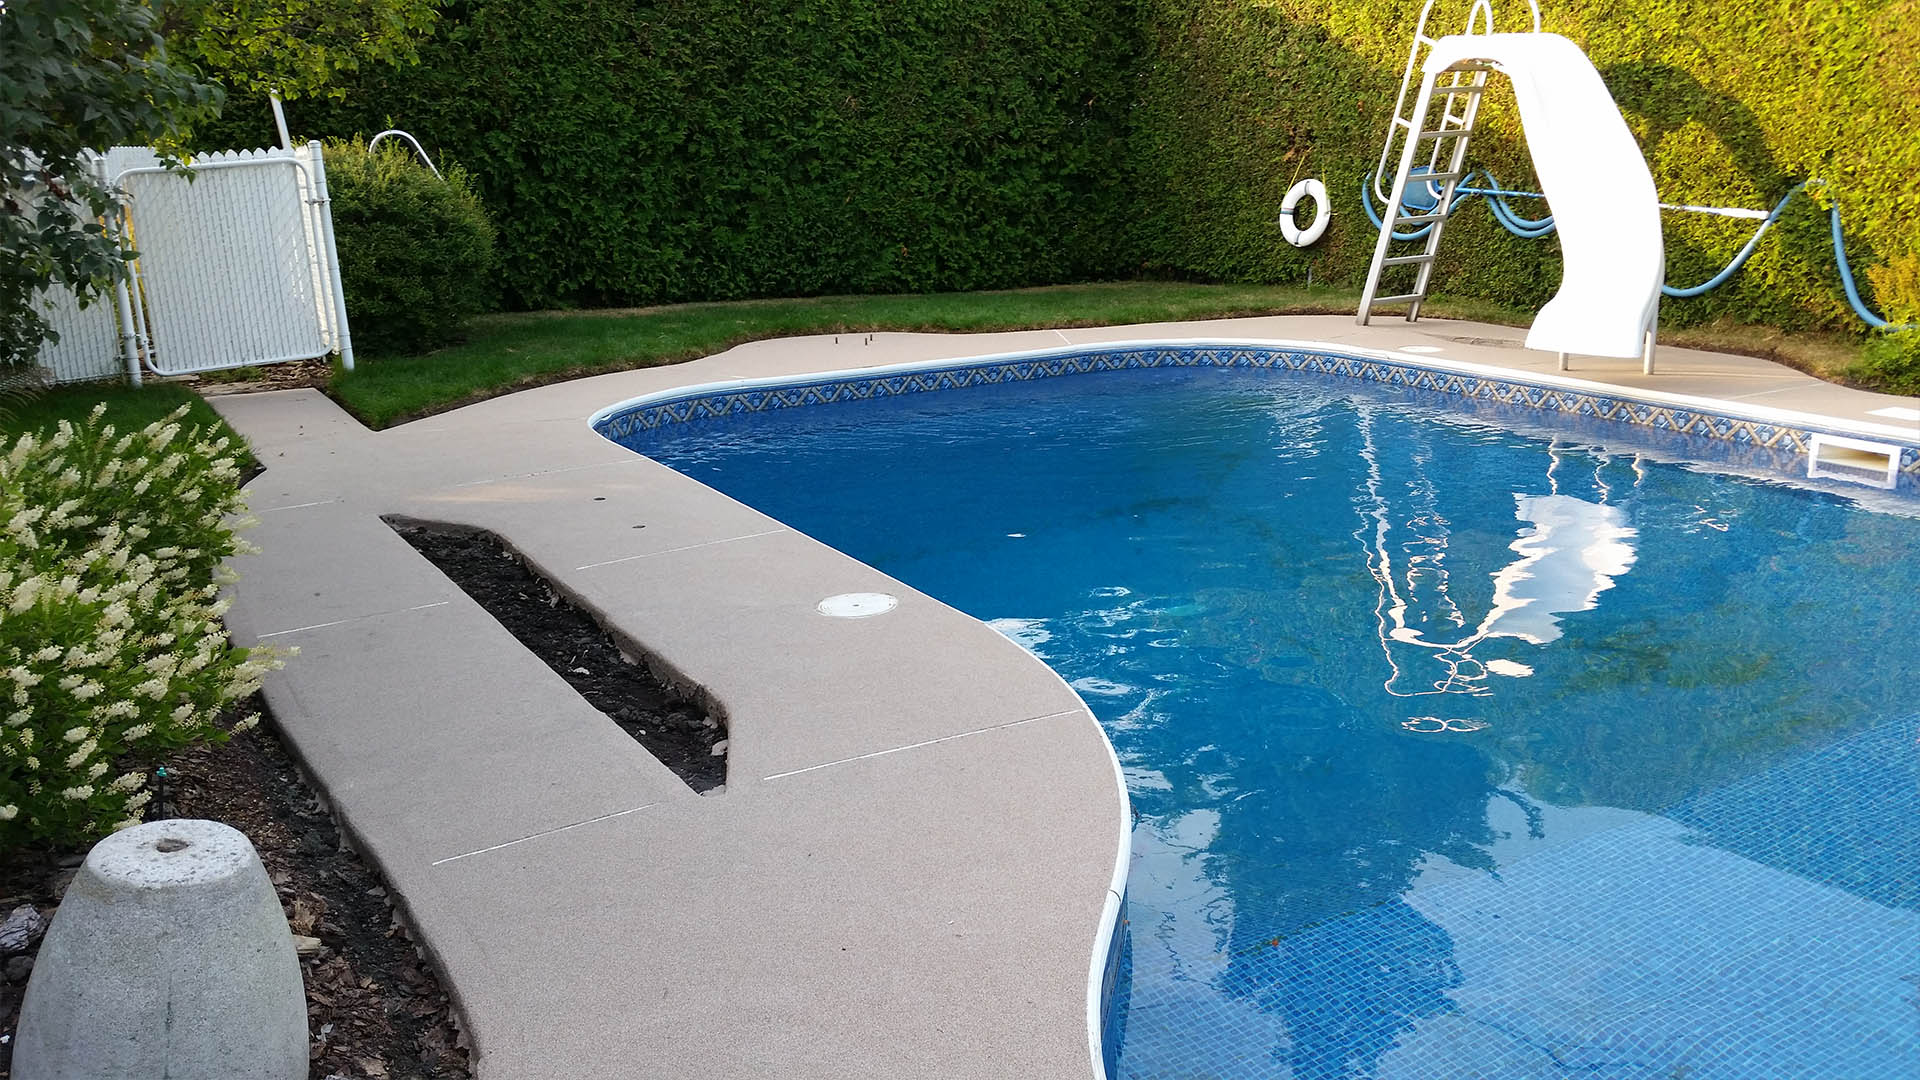 Rev tement de b ton pour contour de piscine rev tement ultra tech - Contour de piscine ...